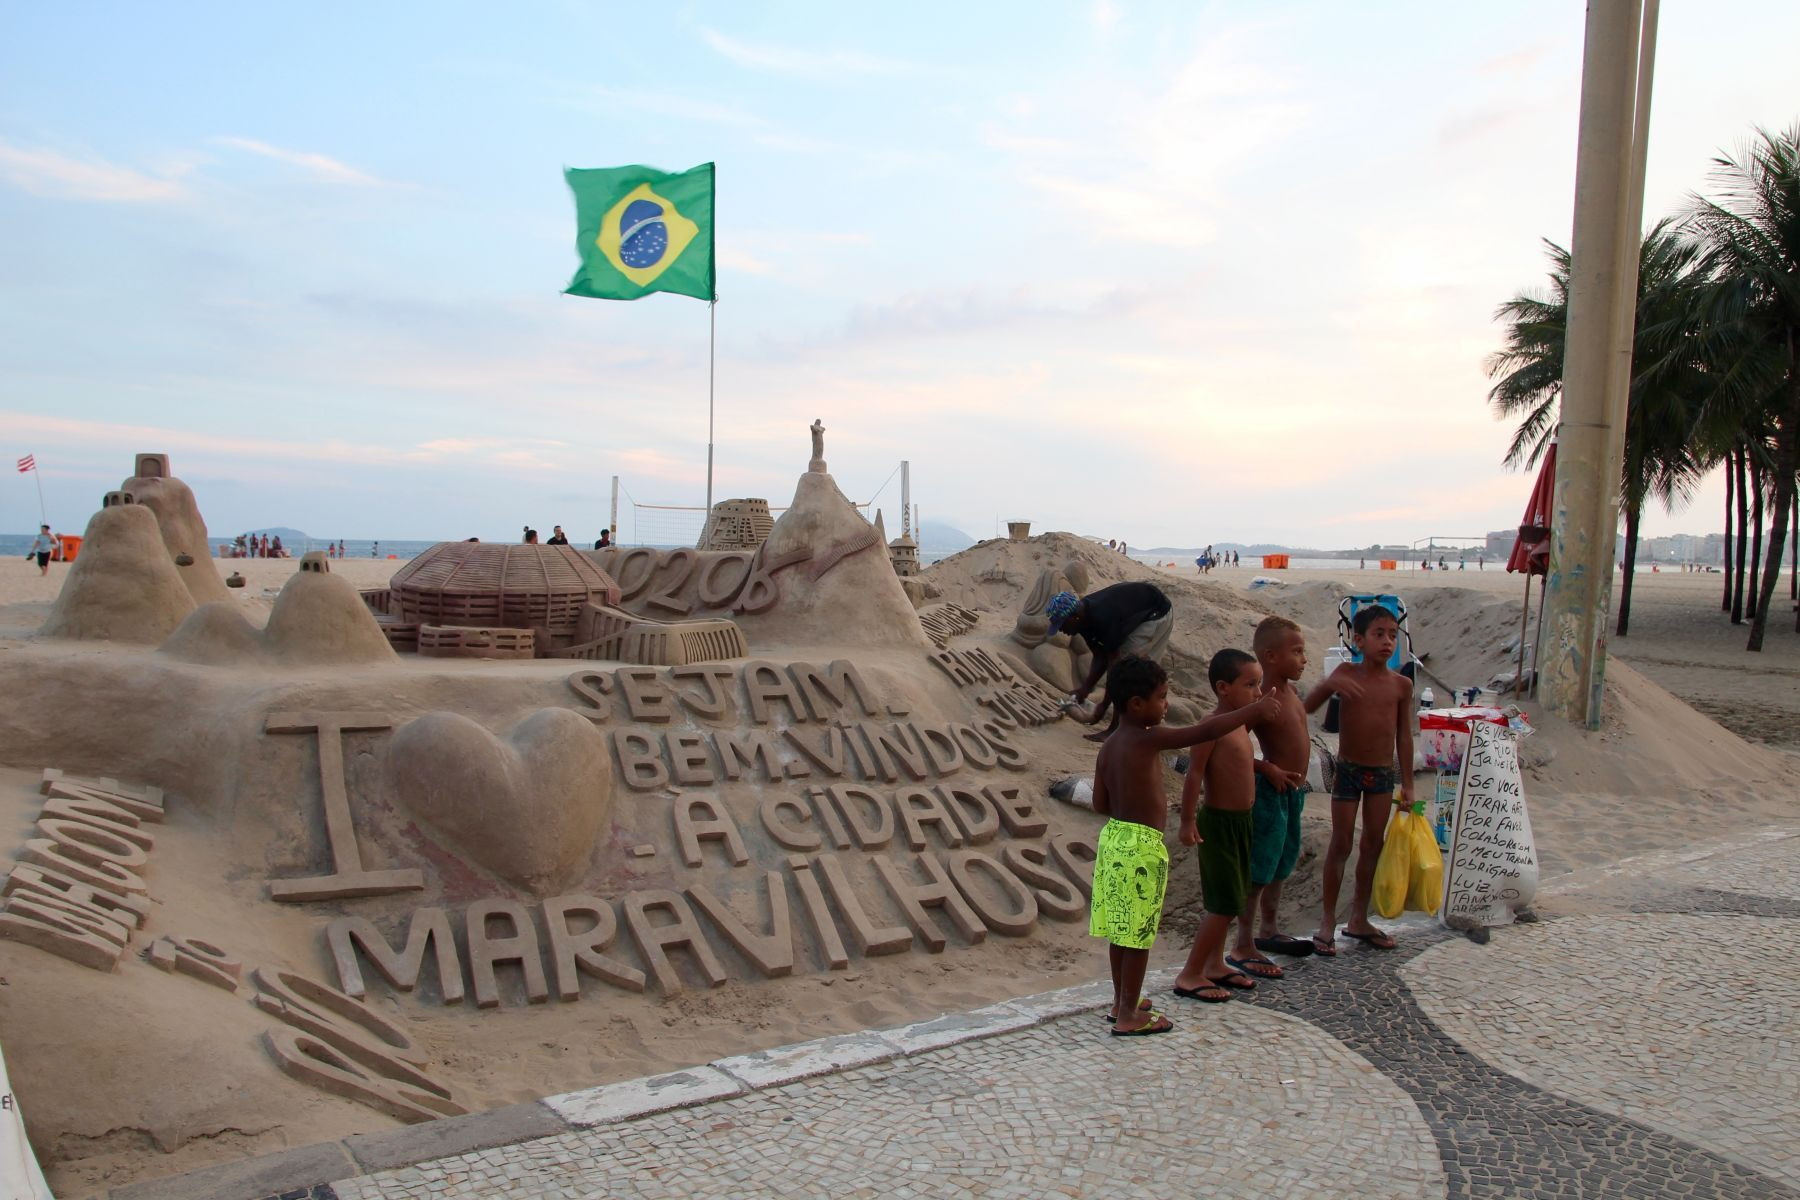 Young boys pose in front of an intricate sandcastle at Copacabana beach.